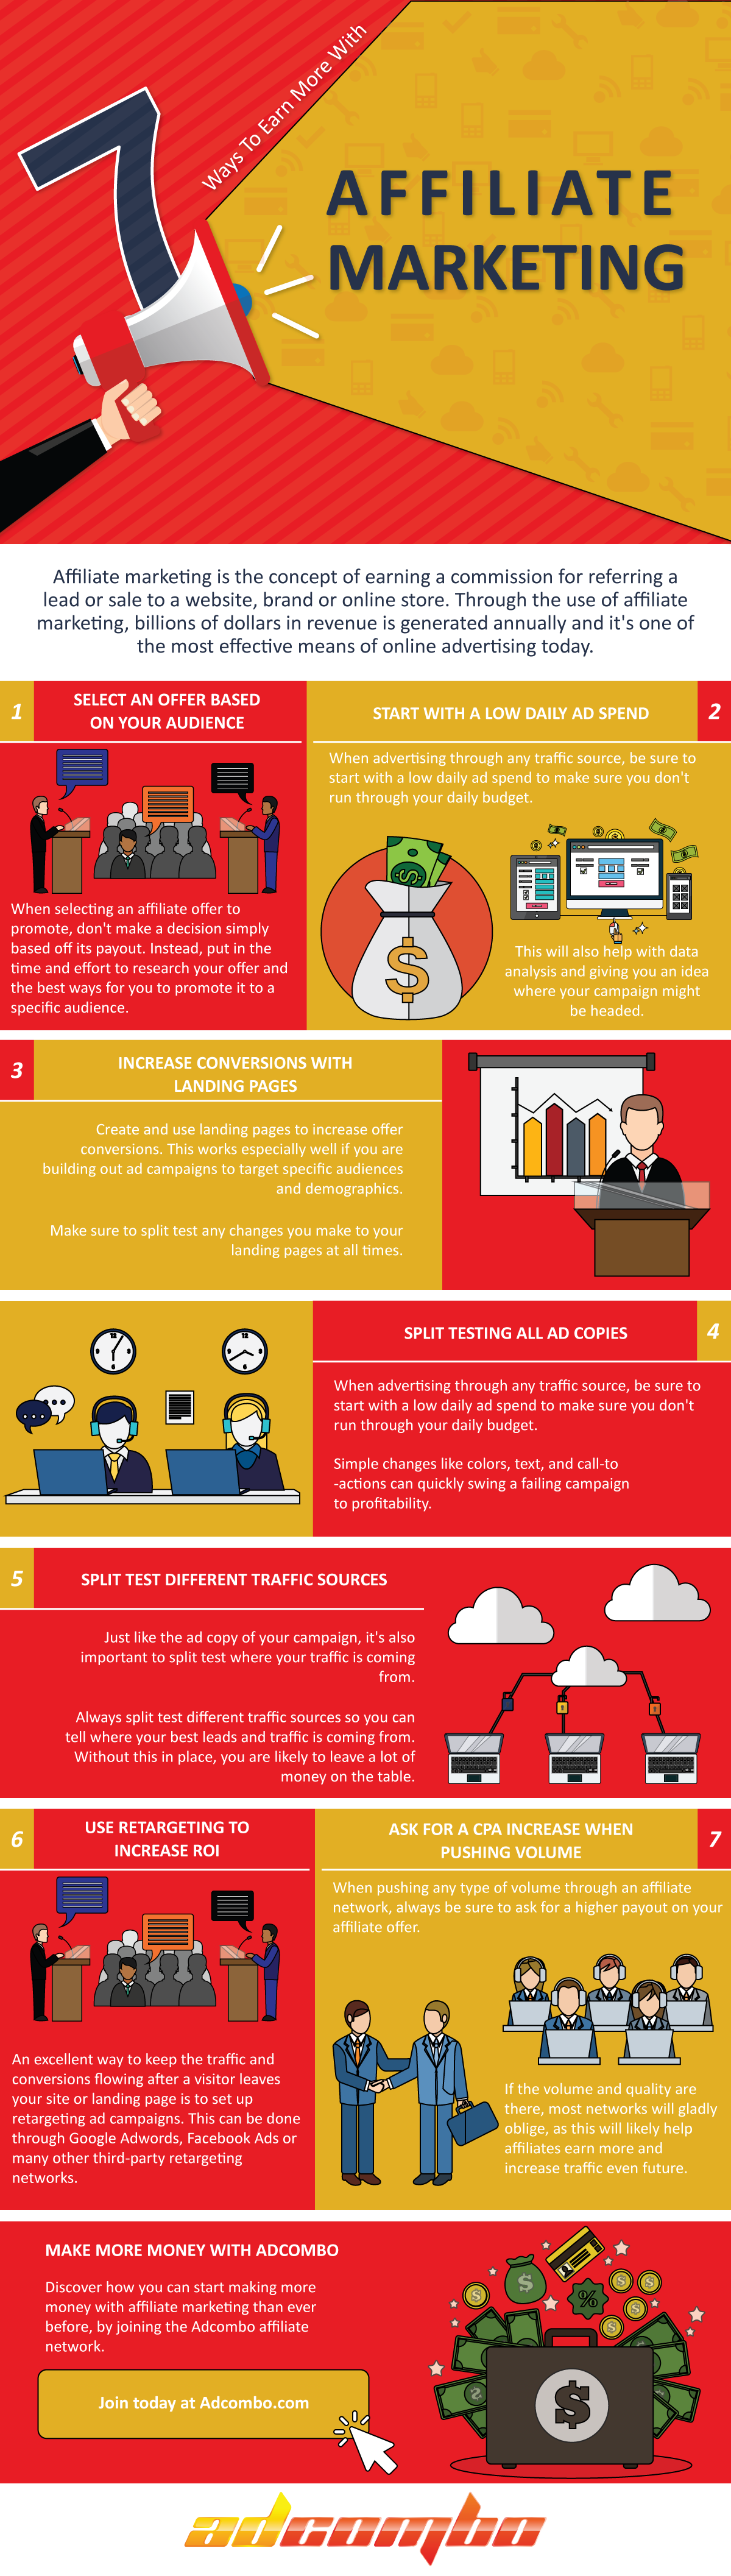 7 Ways to Earn More with Affiliate Marketing [Infographic]